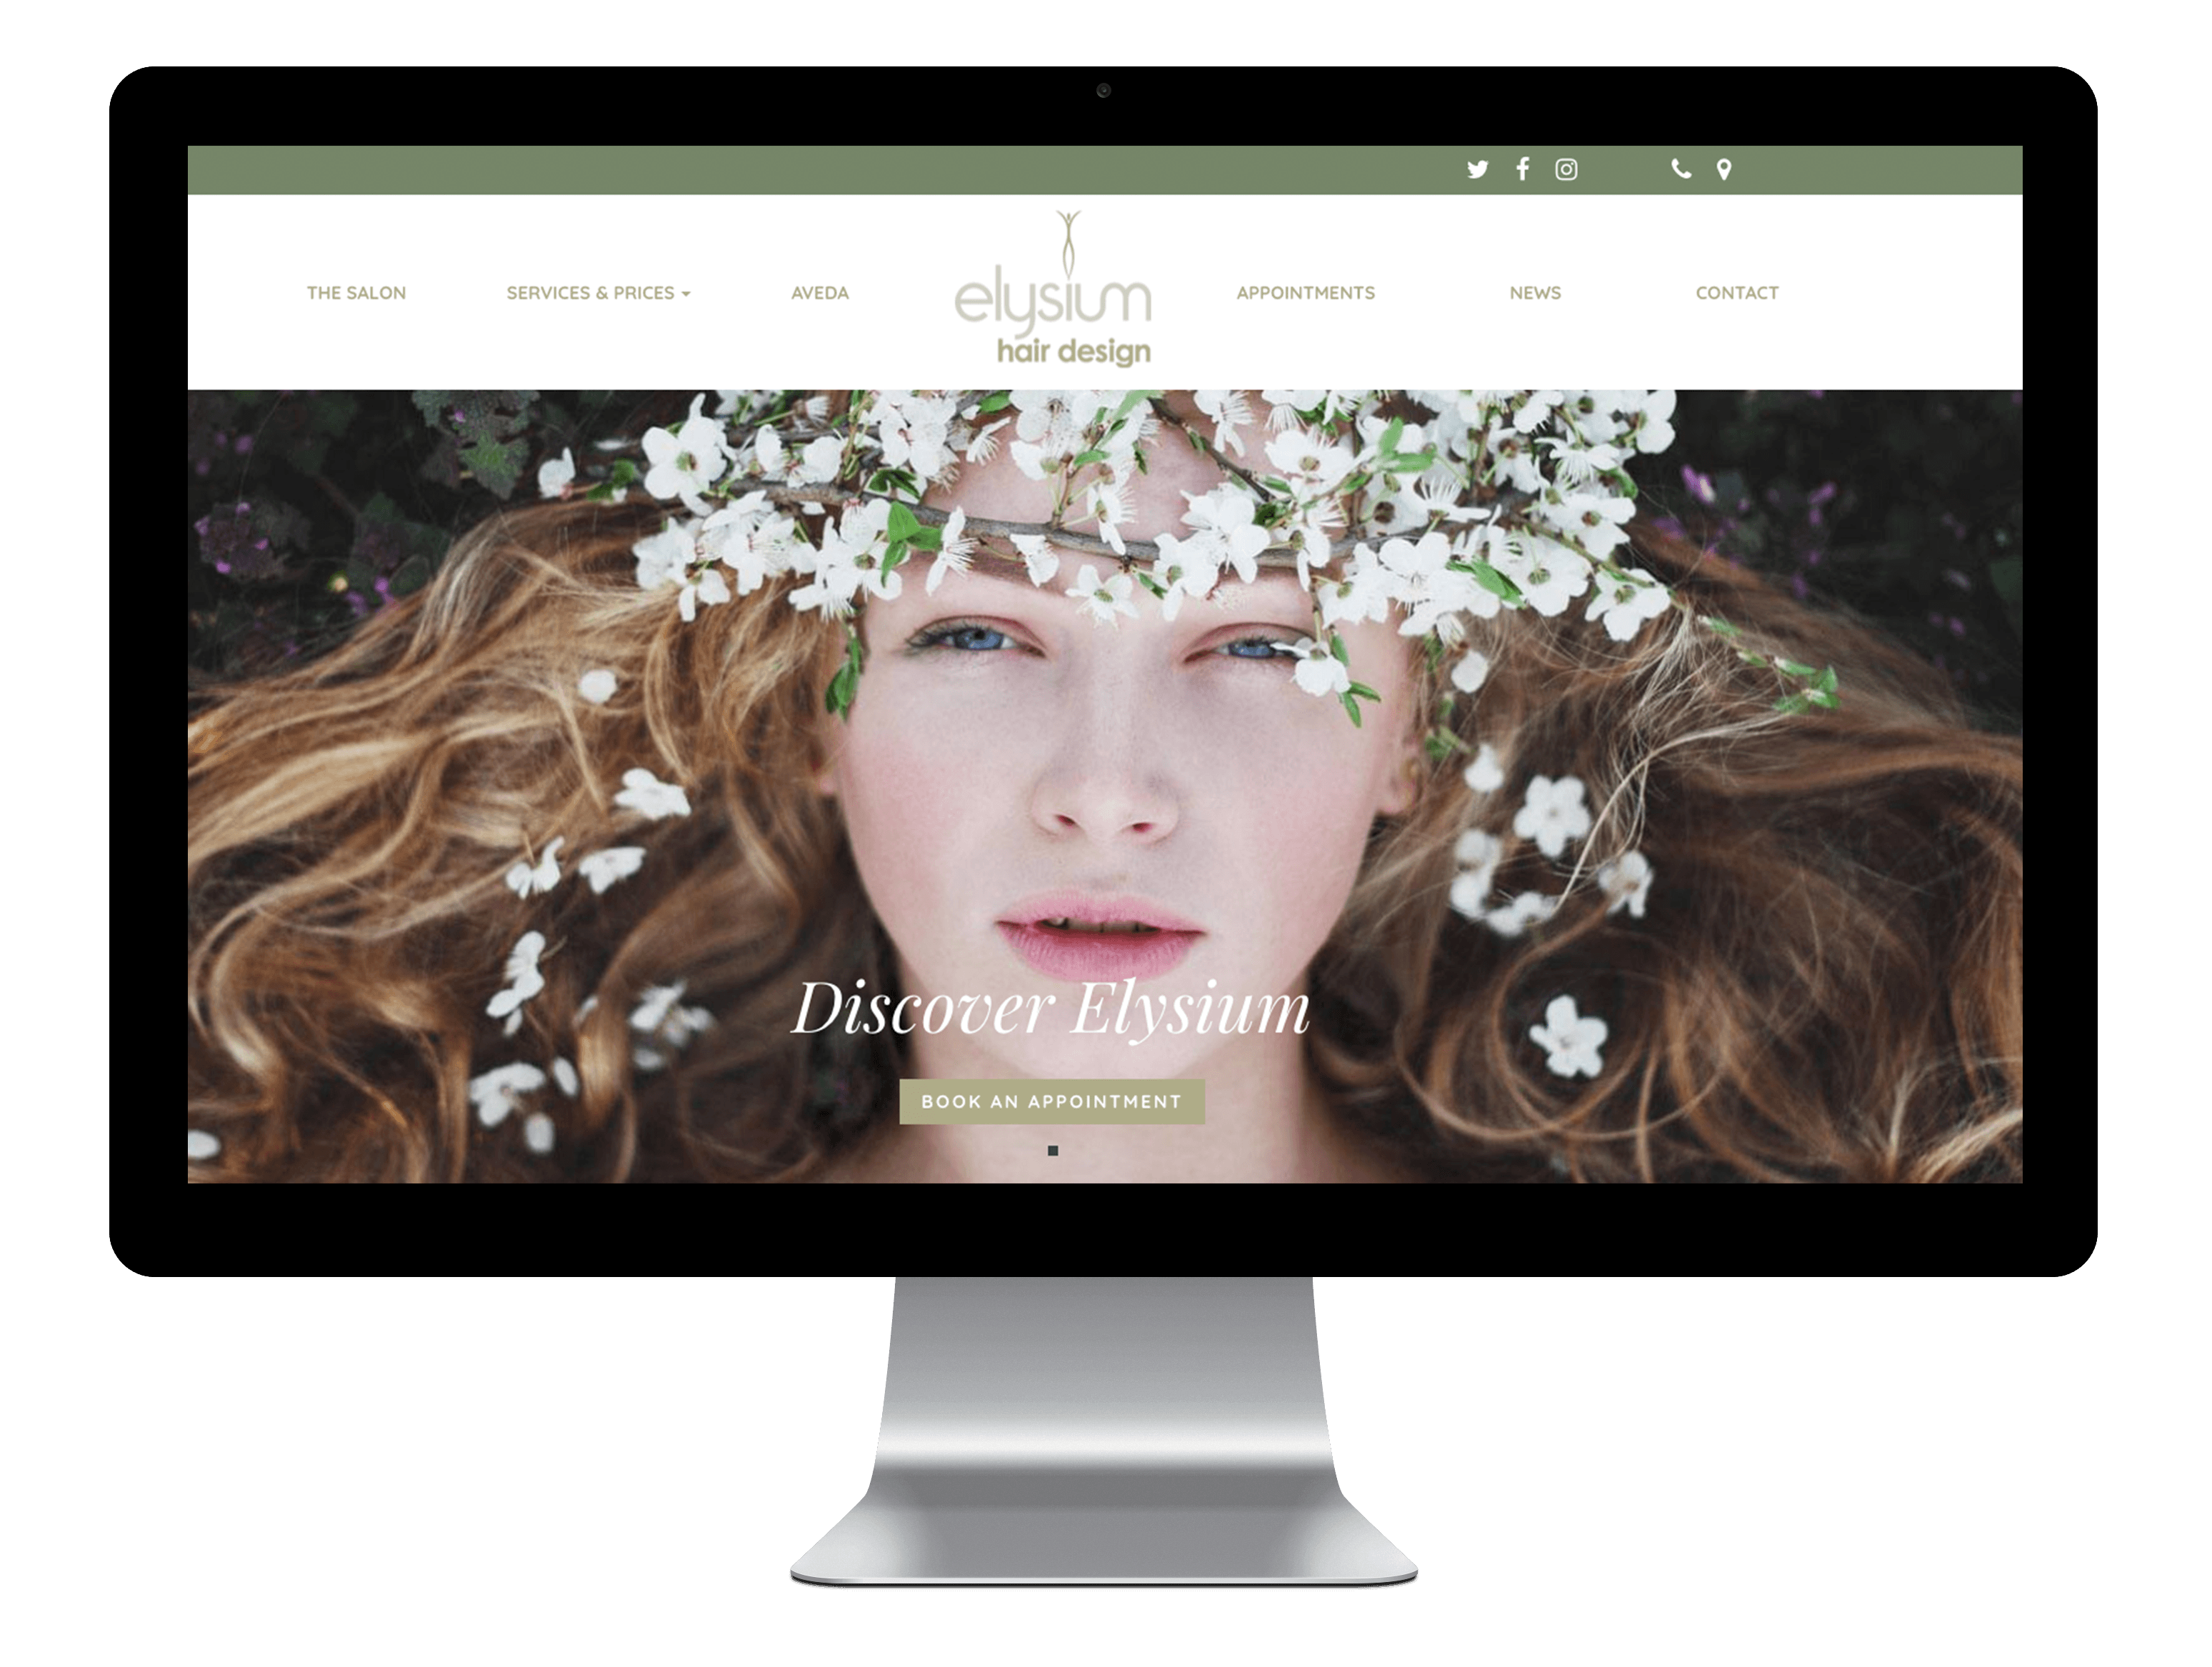 The Elysium Hair Design website displayed on a Mac screen